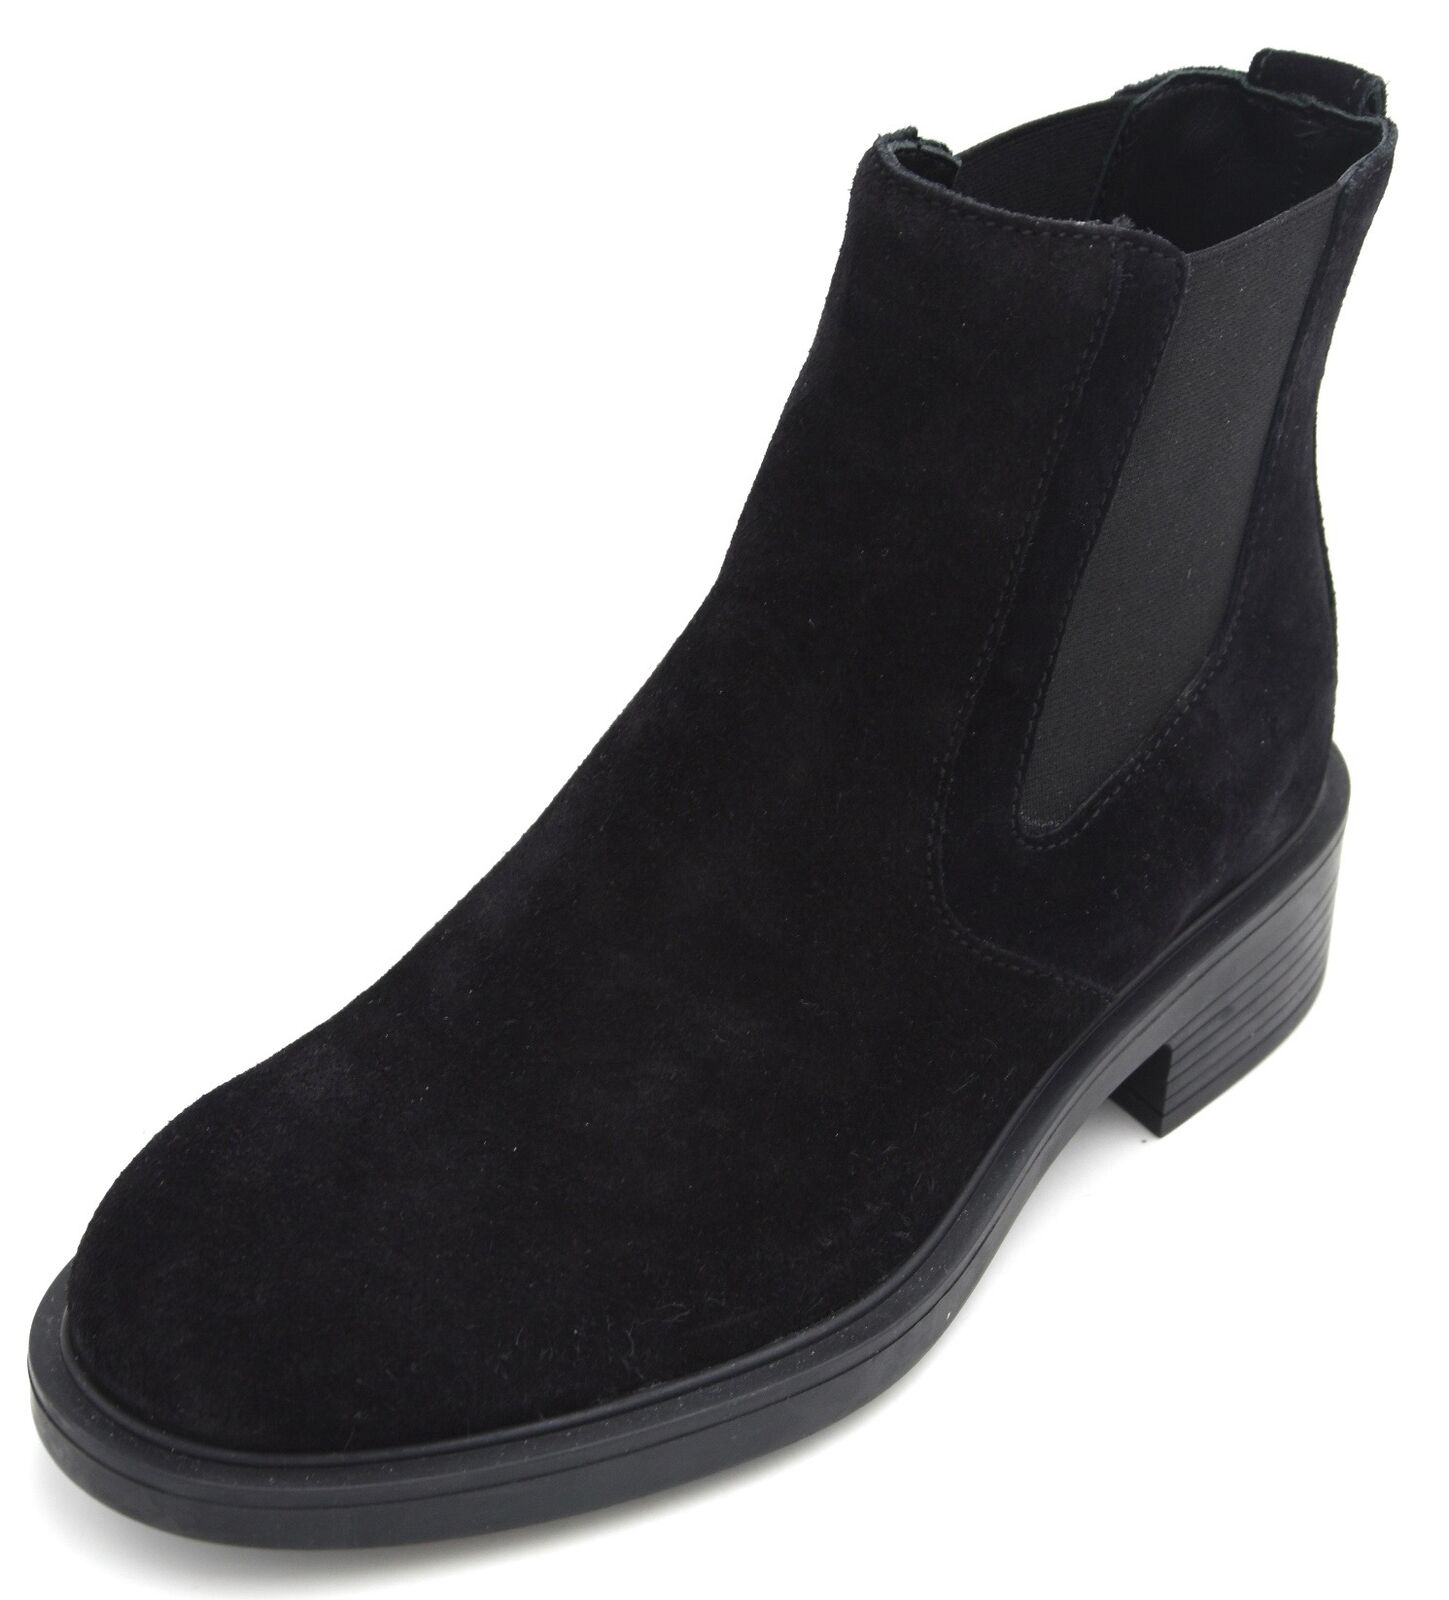 HOGAN H332 WOMAN BEATLES ANKLE BOOTS BOOTIES SUEDE WINTER HXW3320Z660BYEB999